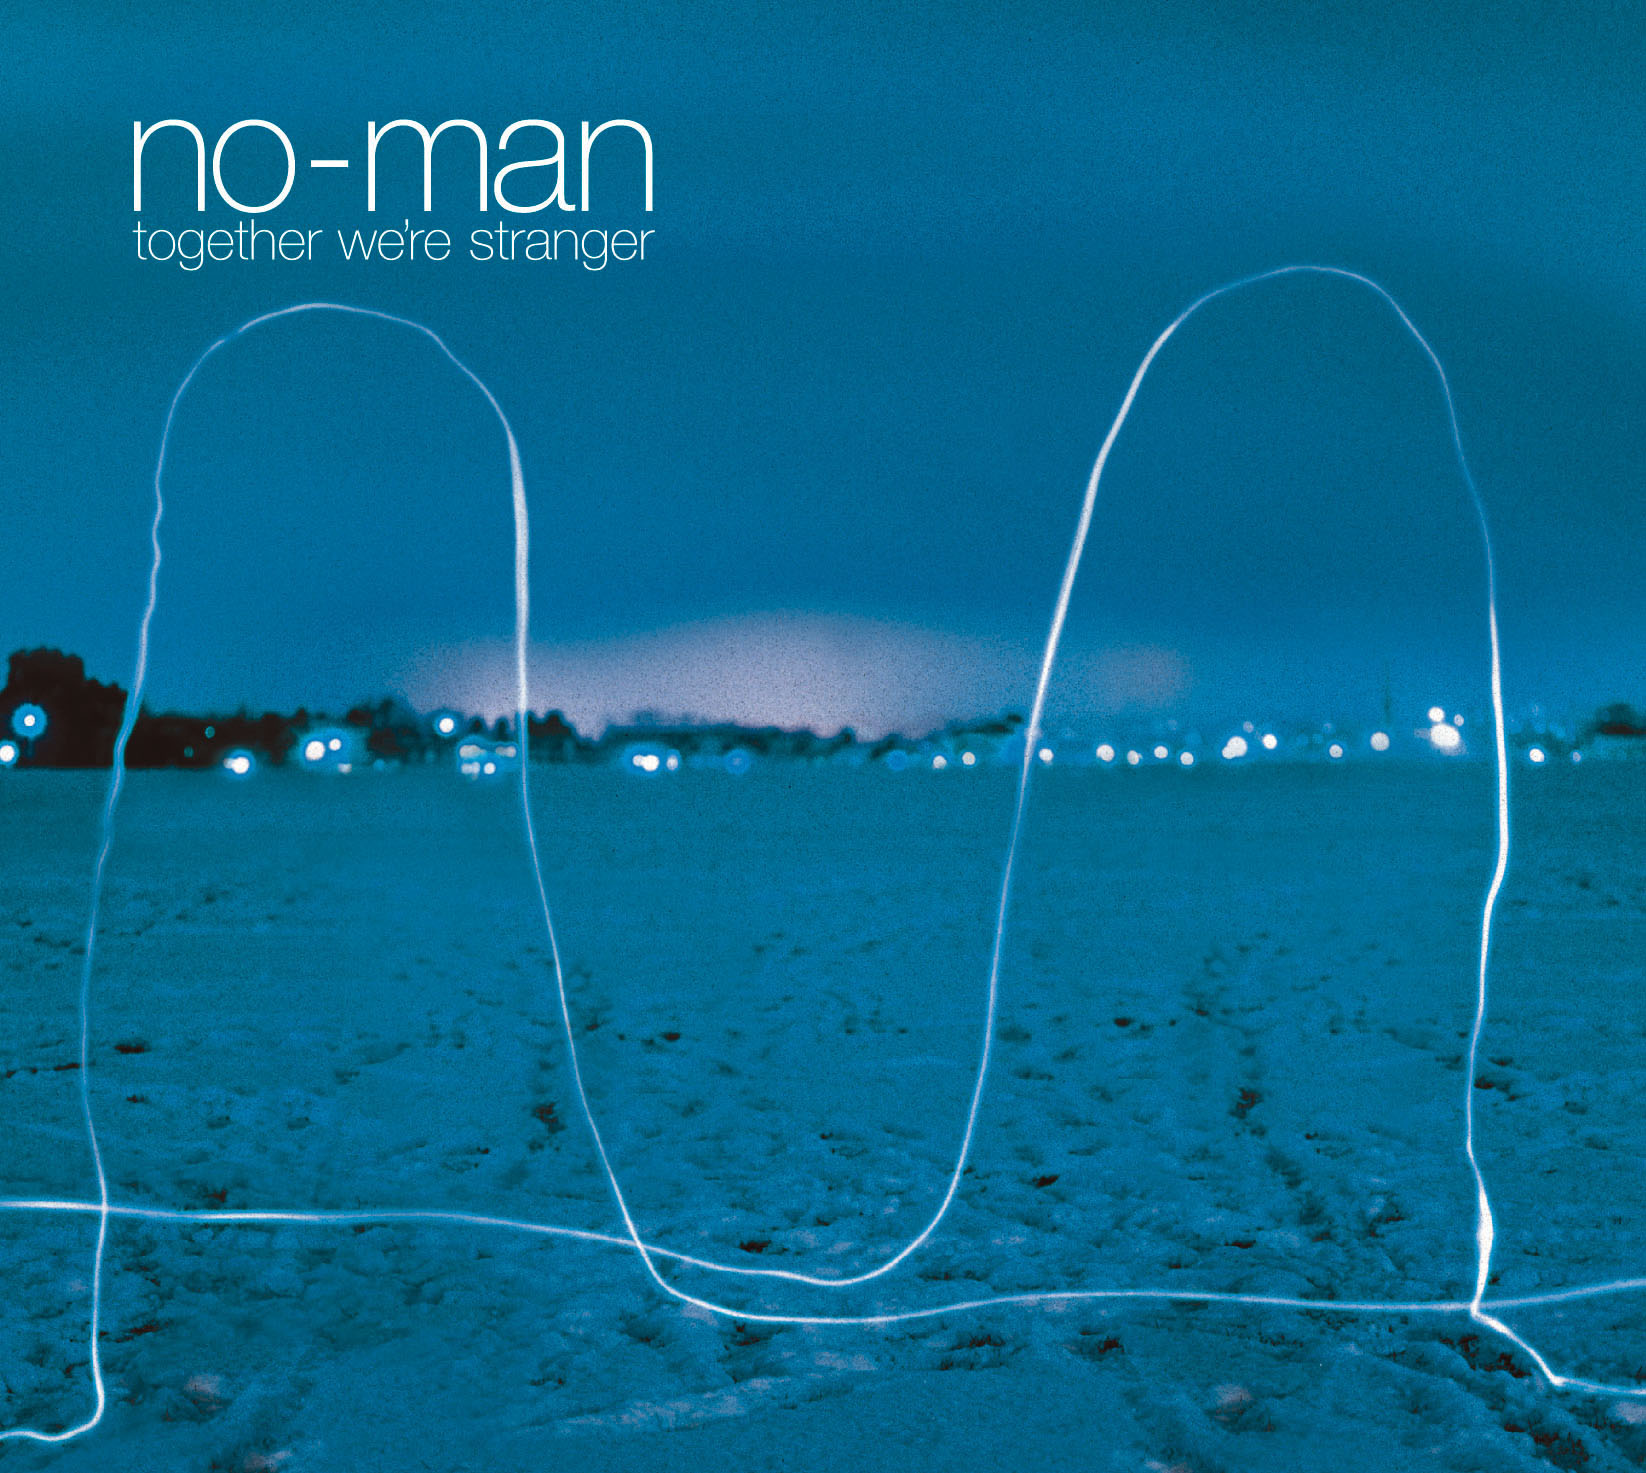 No-man - togetherwerestranger2007